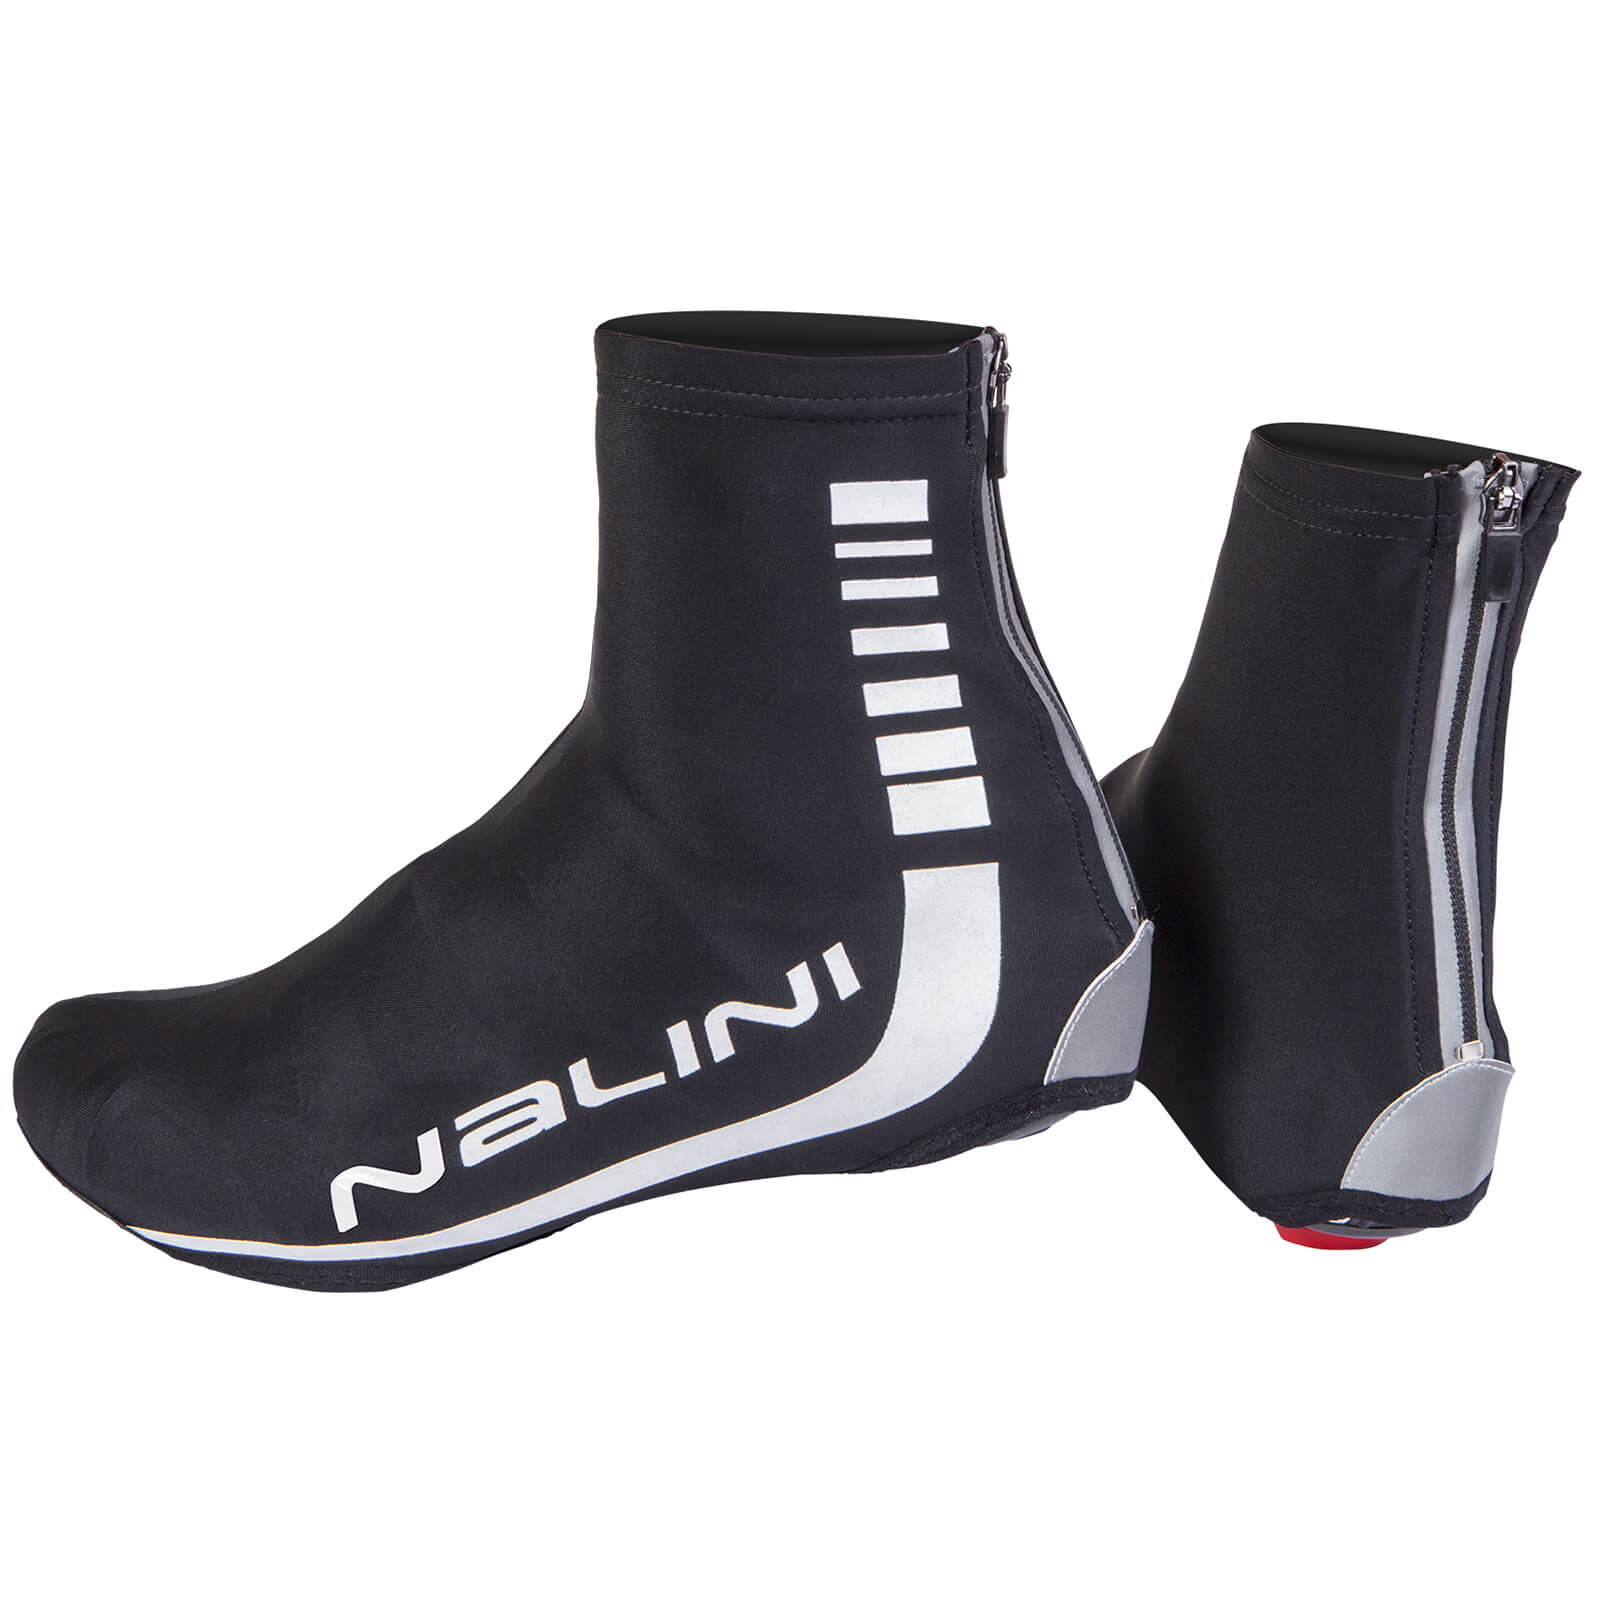 Nalini Pistard Shoecover - Fluro Yellow/Black